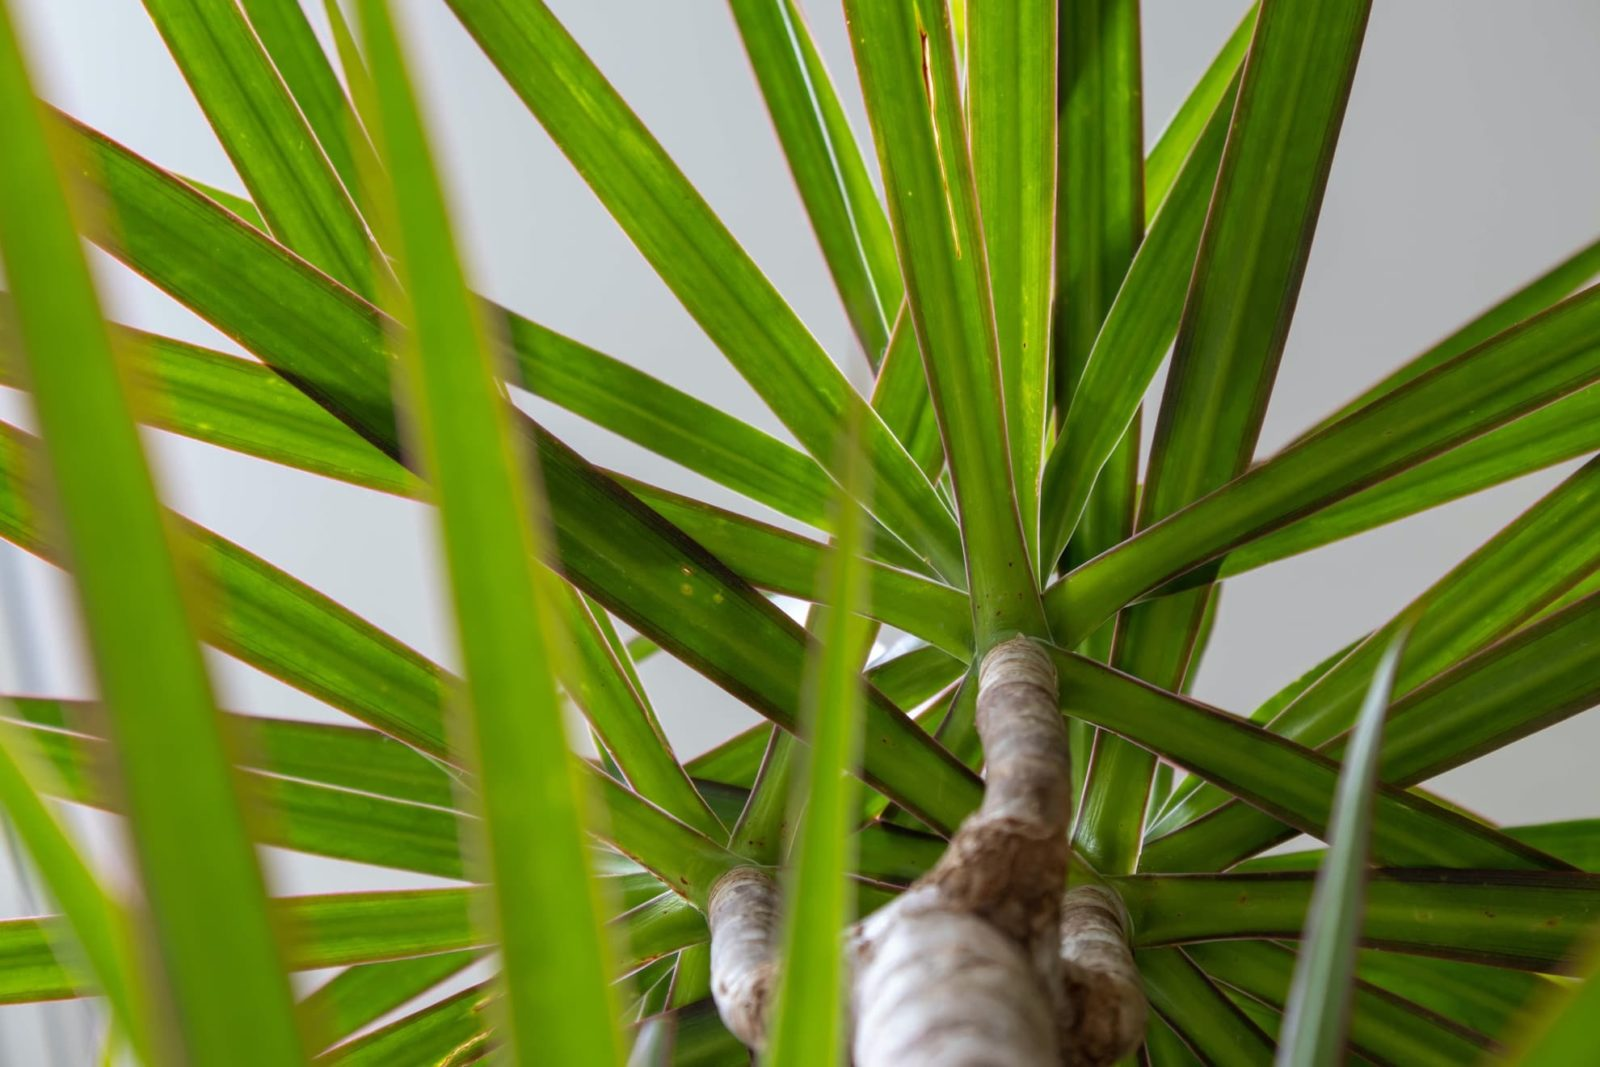 leaves and trunk of Dracaena marginata with white background